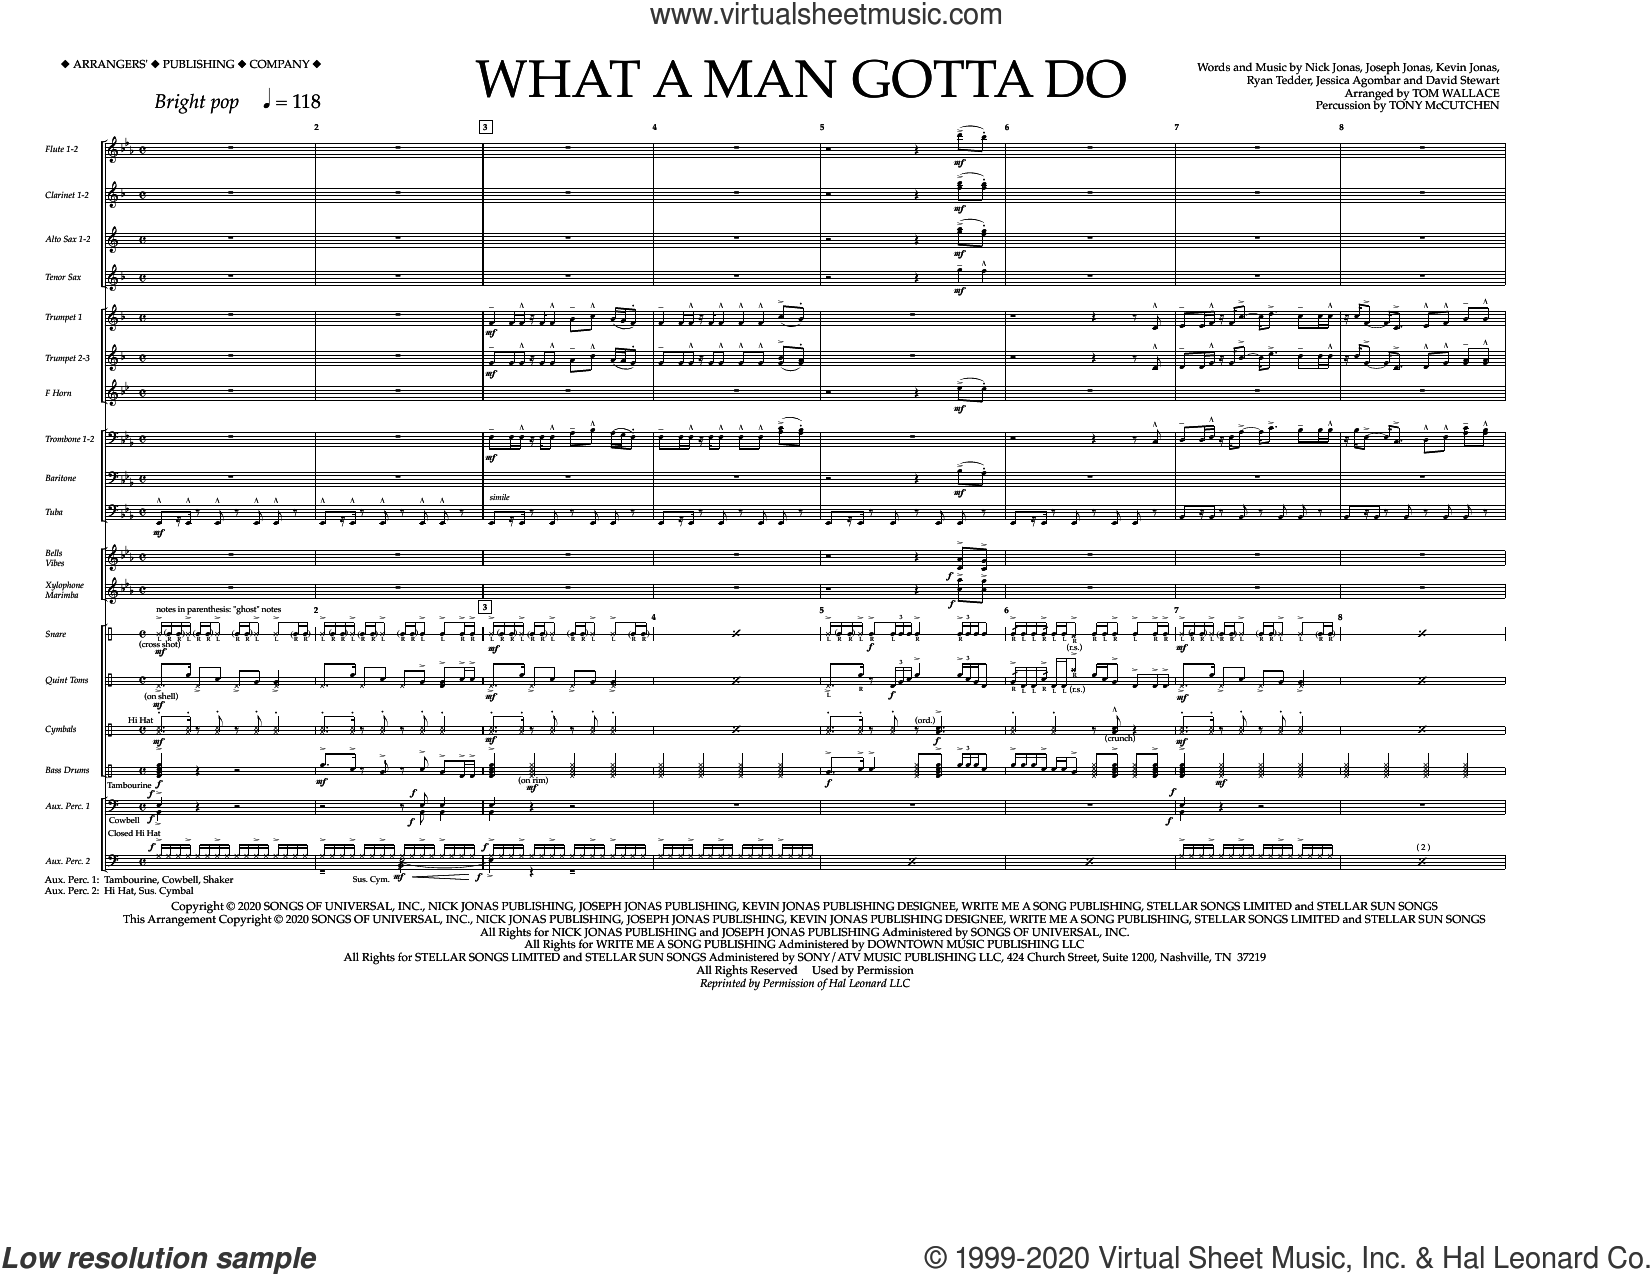 What a Man Gotta Do (arr. Tom Wallace) (COMPLETE) sheet music for marching band by Jonas Brothers, Dave Stewart, Jess Agombar, Joseph Jonas, Kevin Jonas, Nick Jonas, Ryan Tedder, Tom Wallace and Tony McCutchen, intermediate skill level